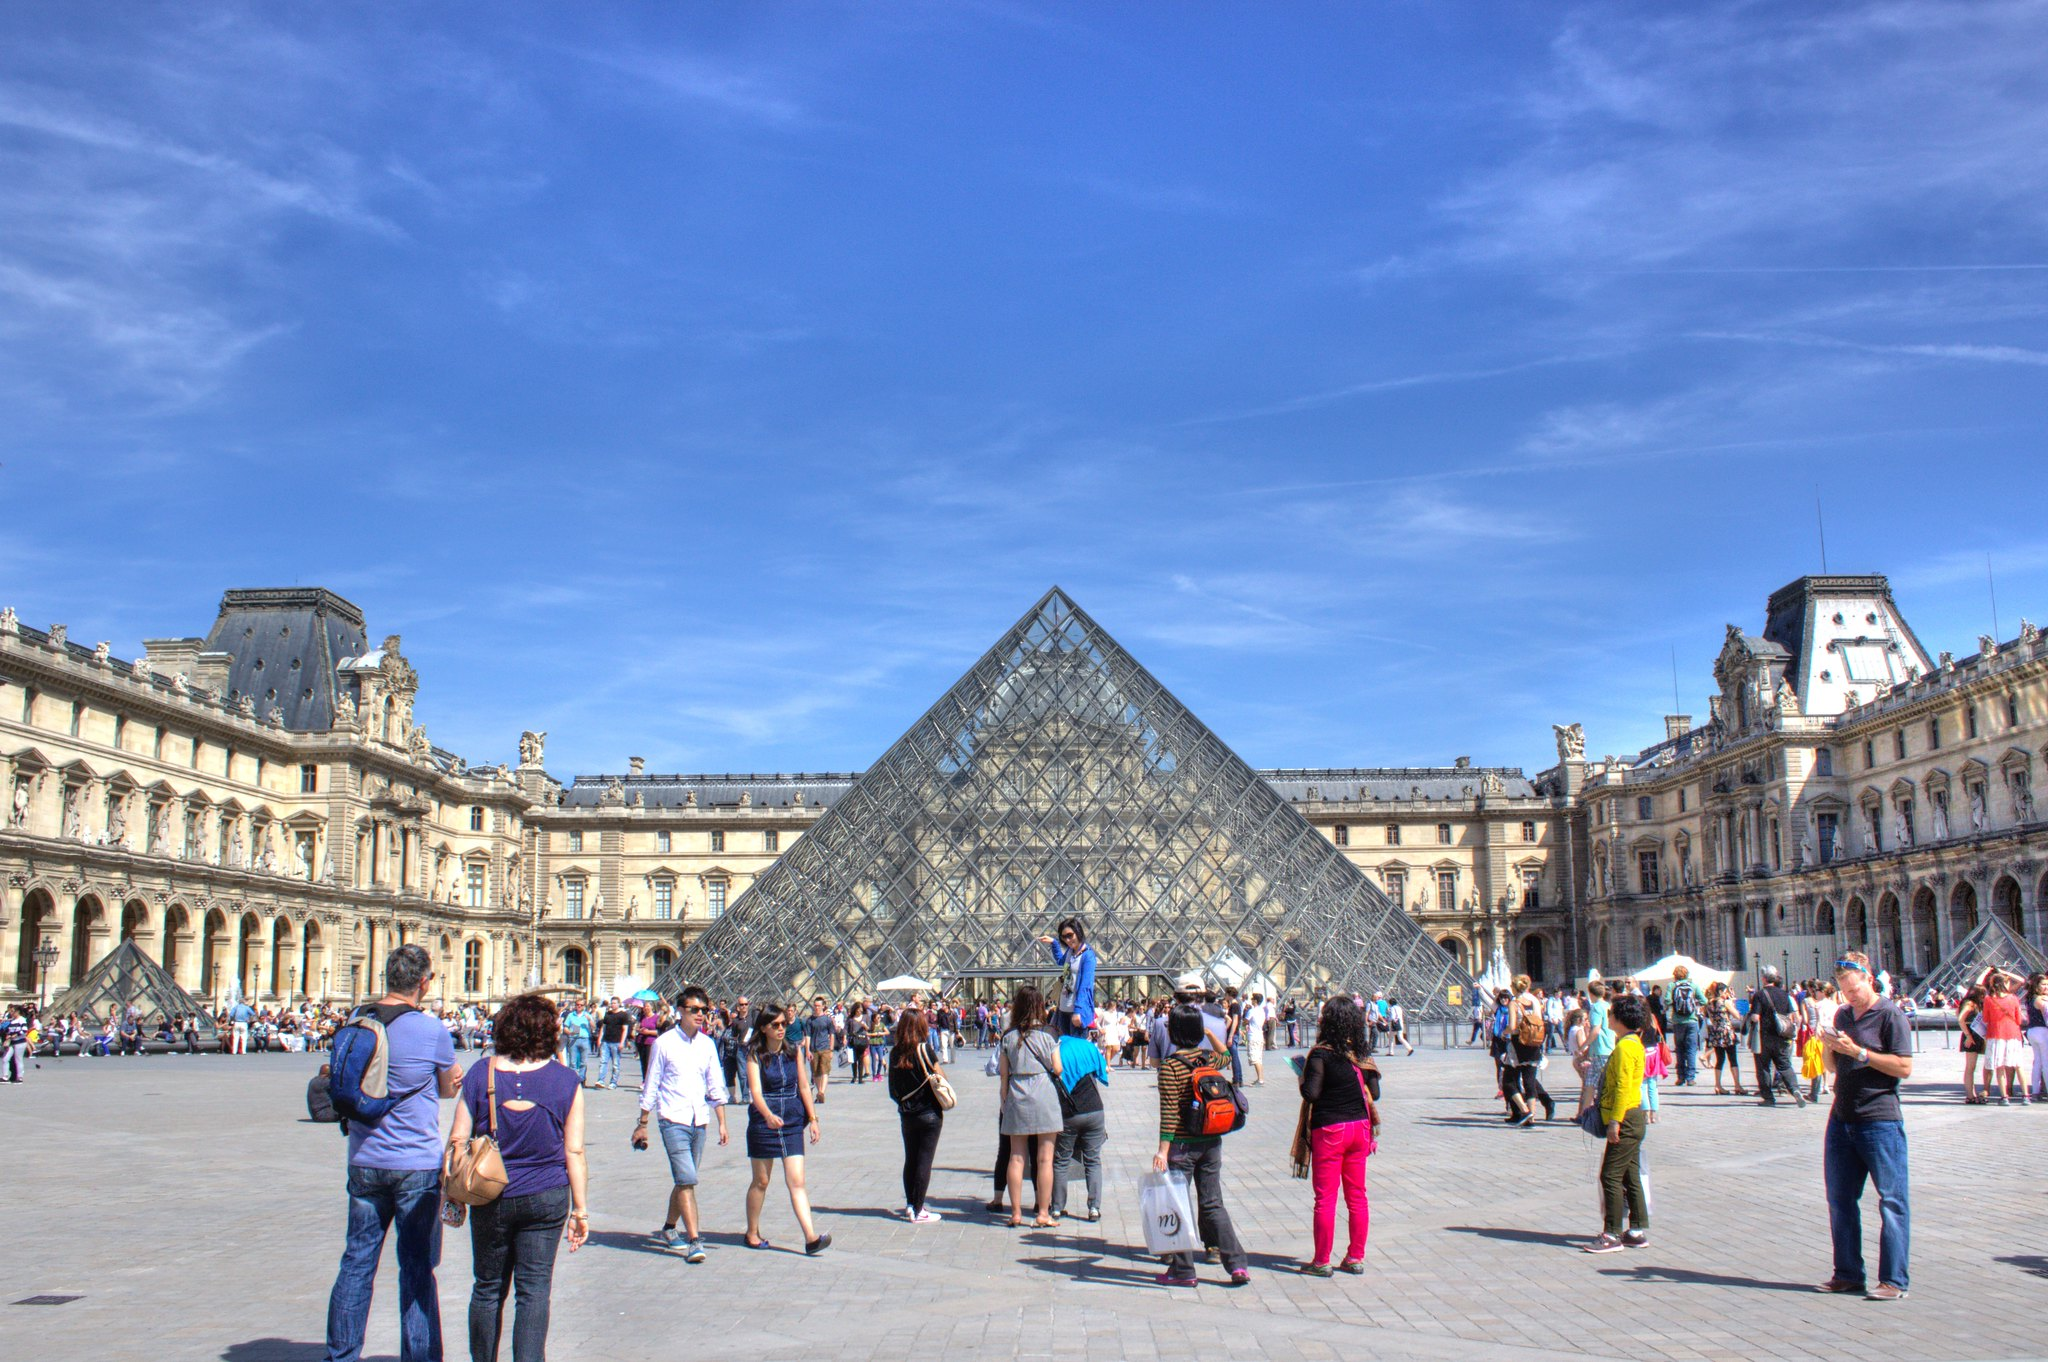 la cour carr e et la pyramide du louvre flickr photo sharing. Black Bedroom Furniture Sets. Home Design Ideas